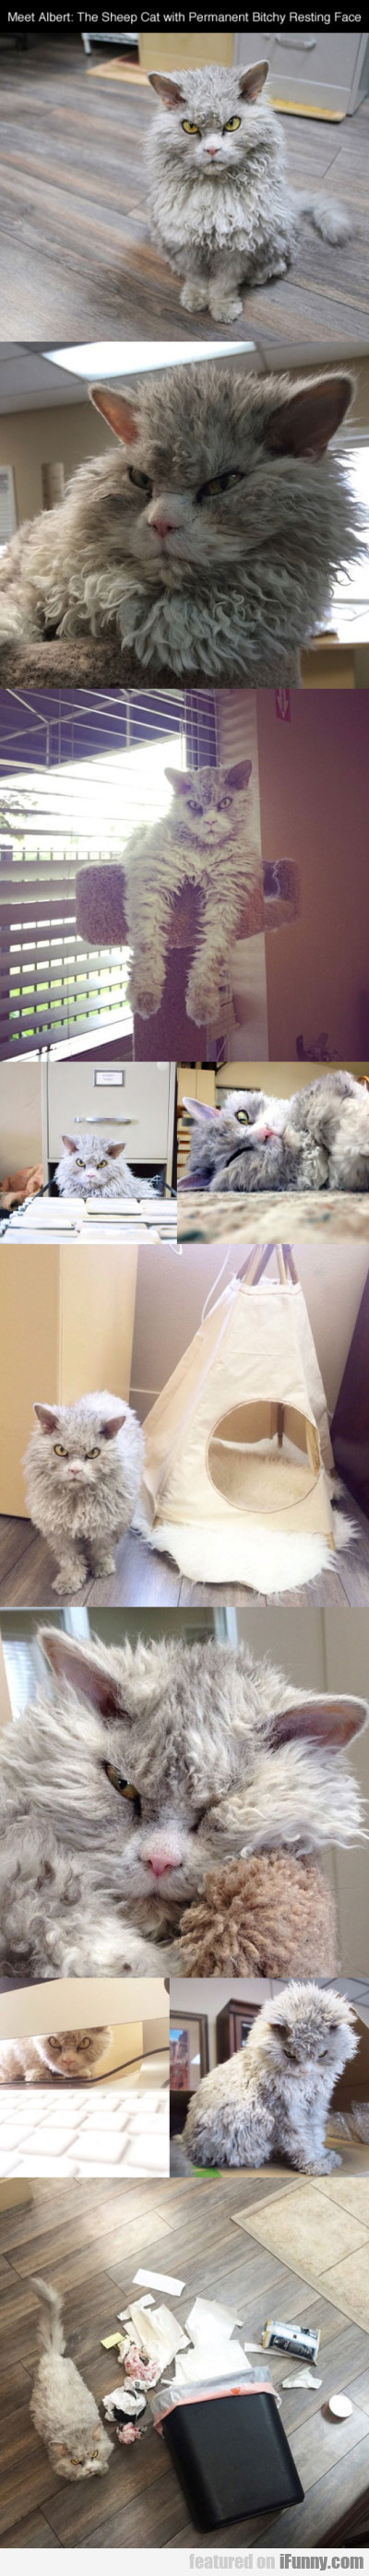 Meet Albert The Sheep Cat With Permanent